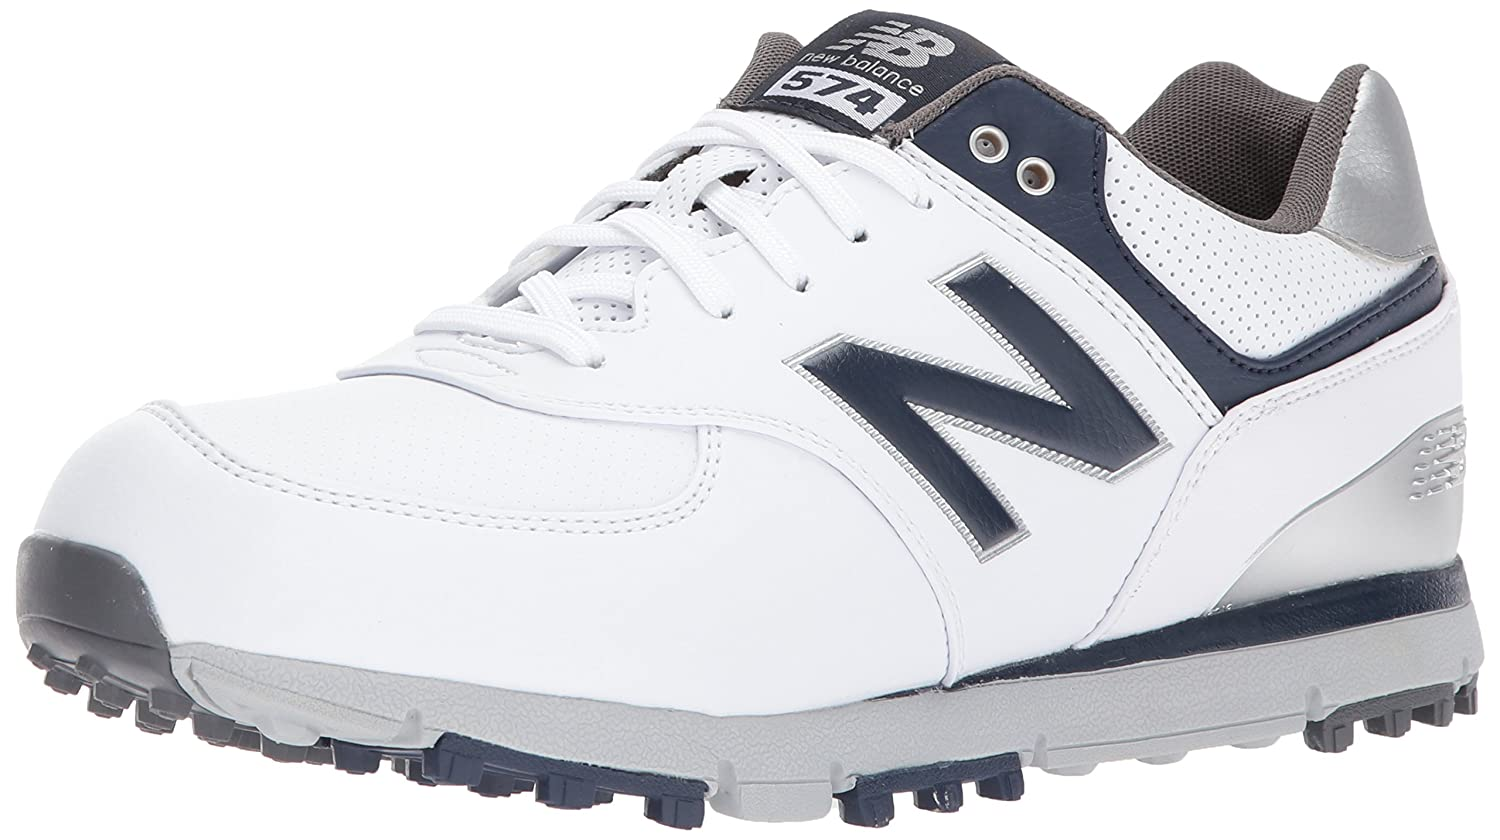 official photos 88a15 27b0f Amazon.com   New Balance Men s 574 SL Golf Shoe   Golf